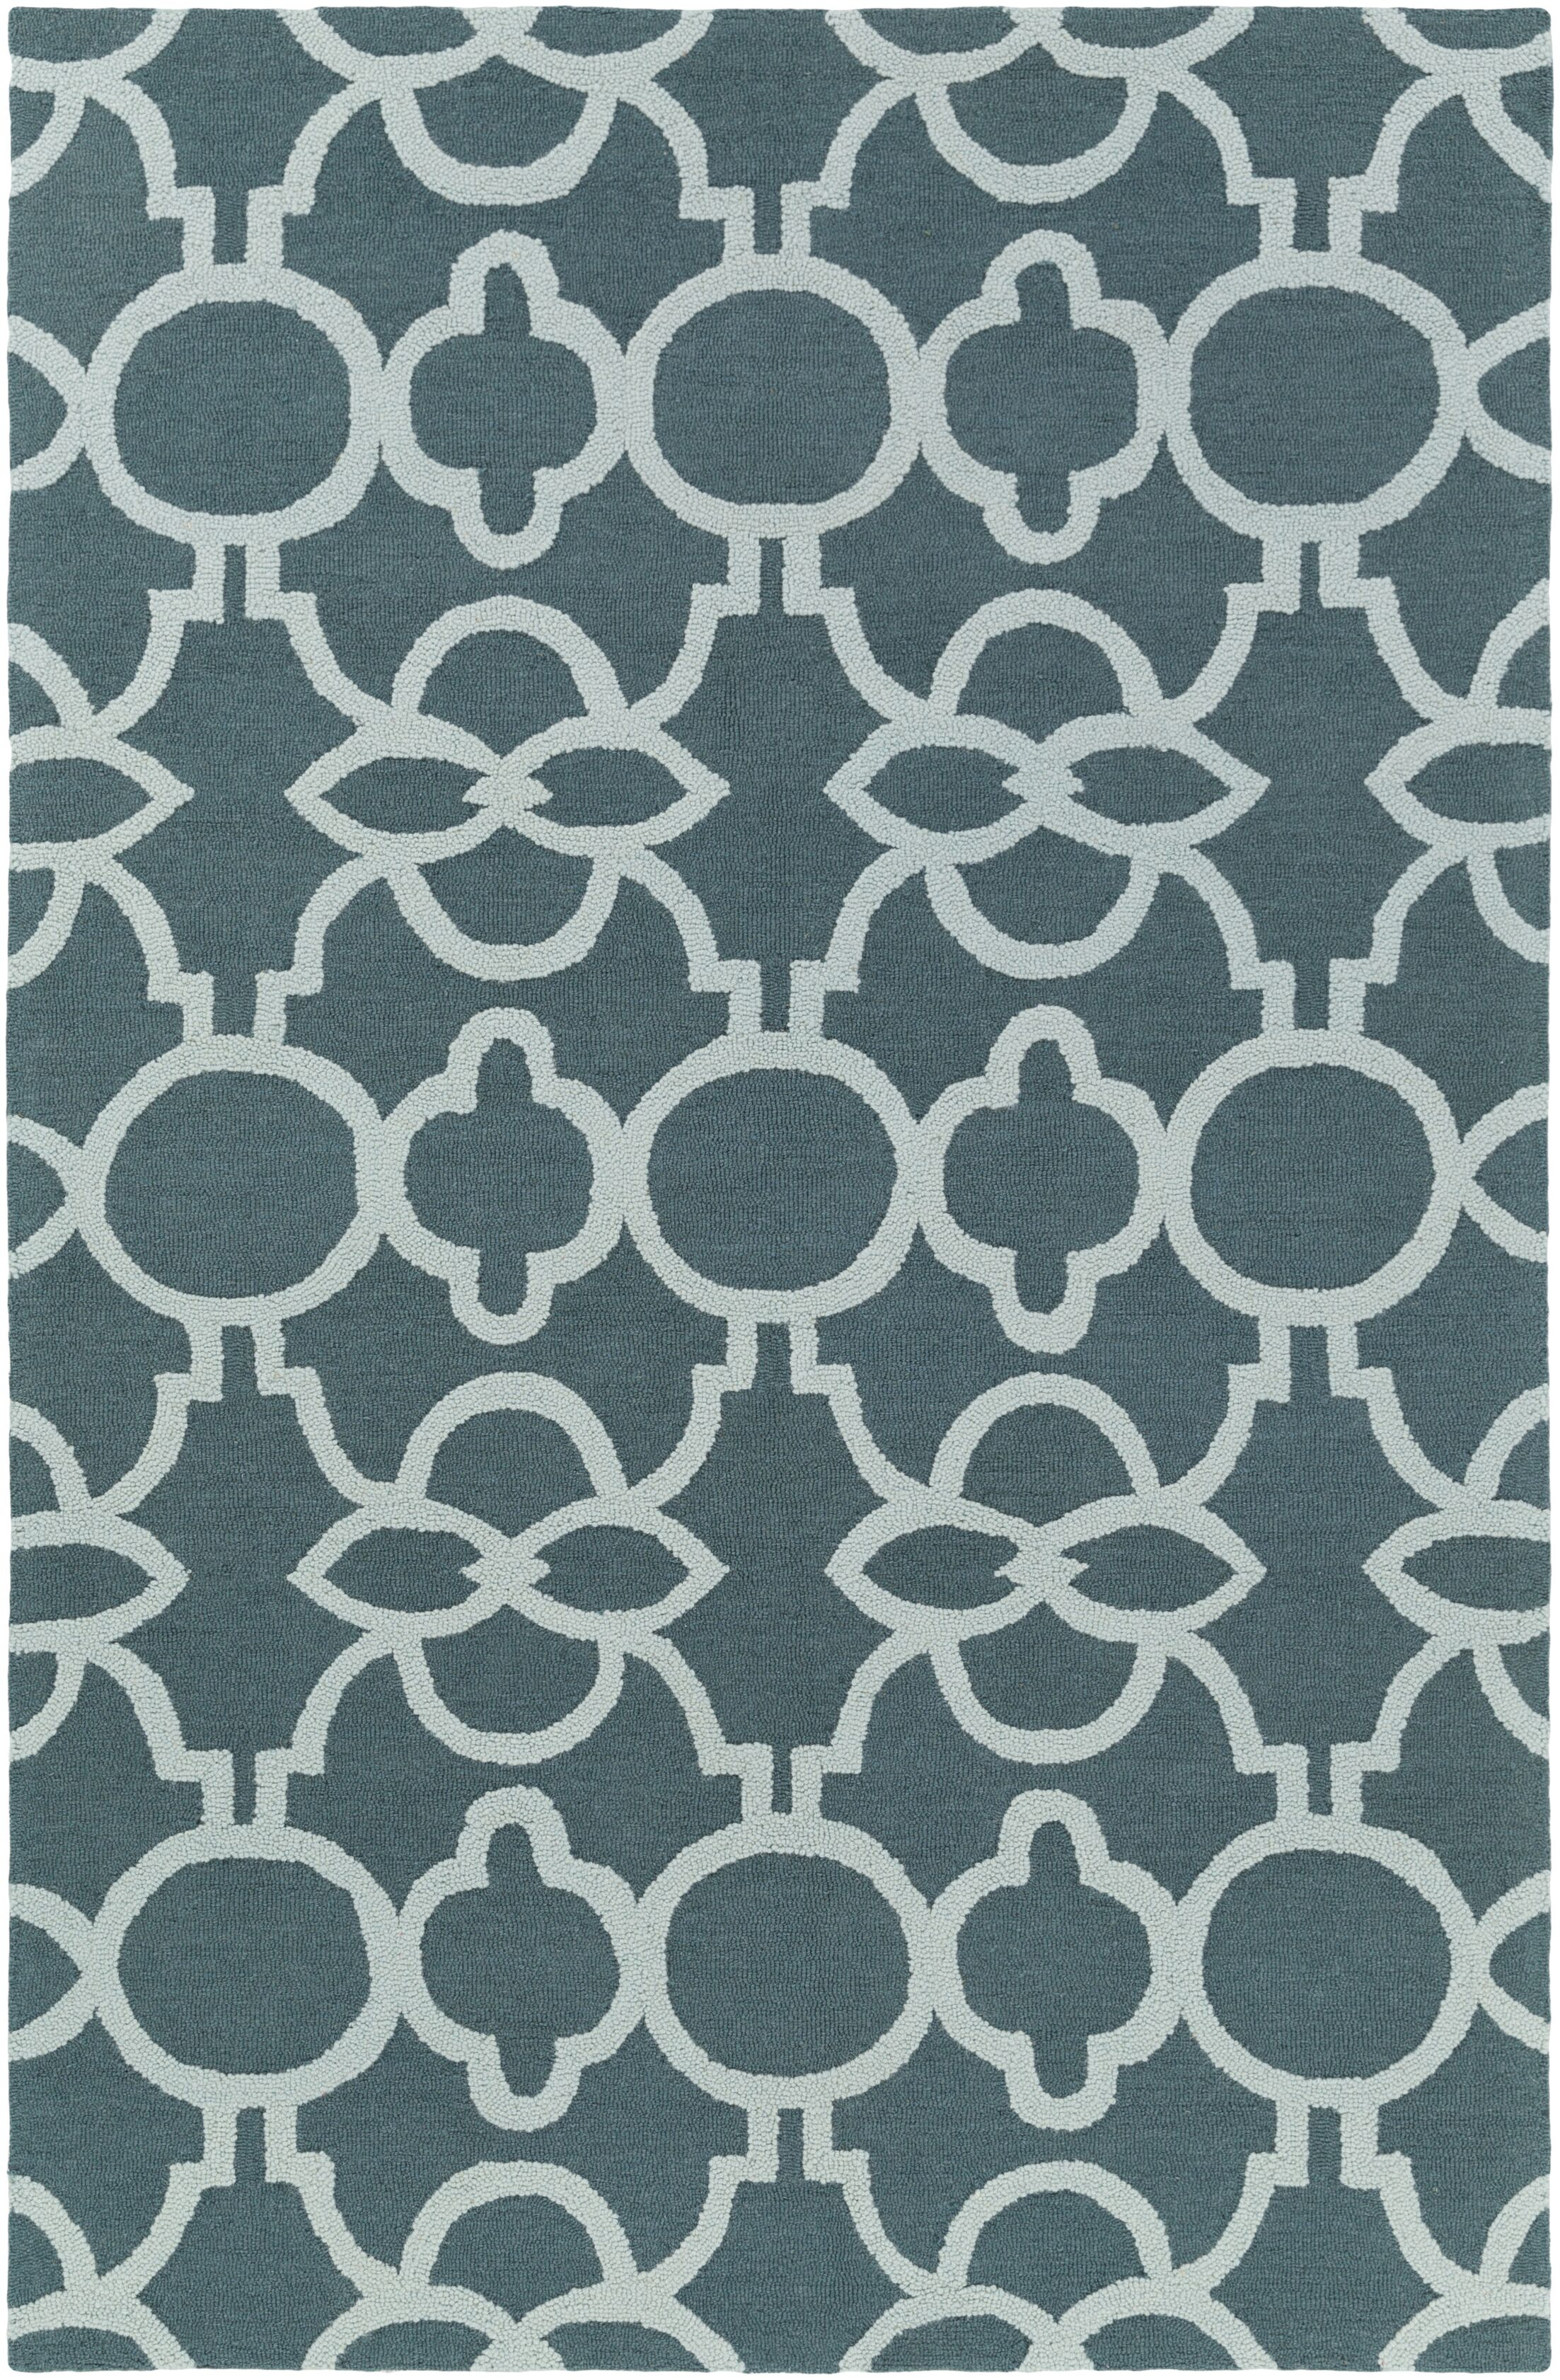 Sandi Hand-Crafted Teal/Mint Area Rug Rug Size: Runner 2'3